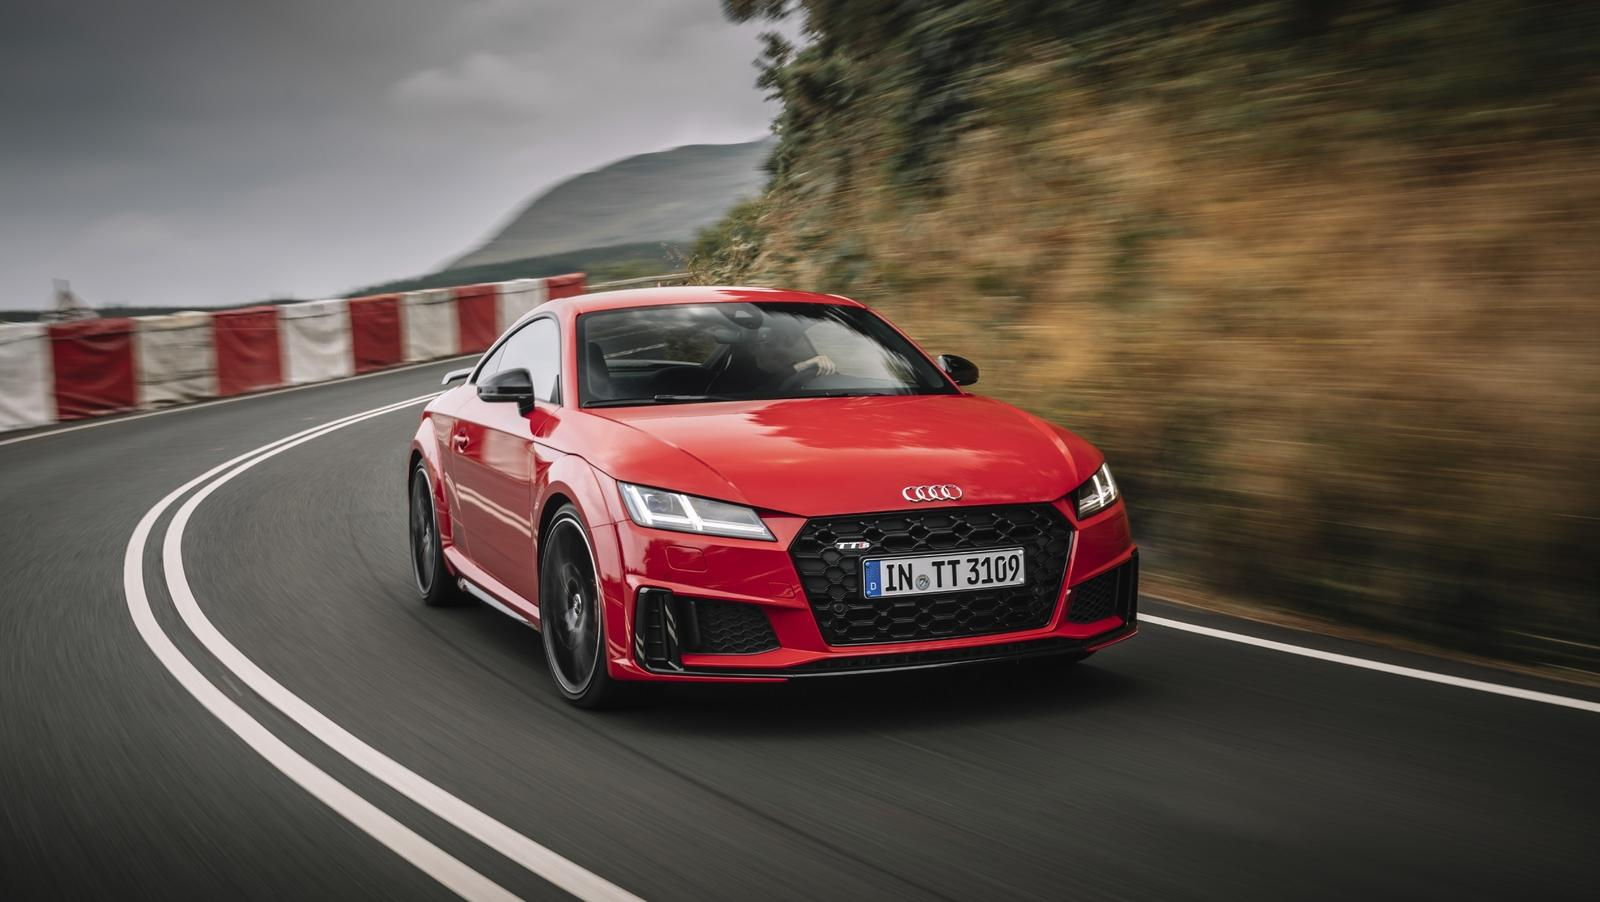 List Of Muscle Cars >> Audi TT: Latest News, Reviews, Specifications, Prices ...